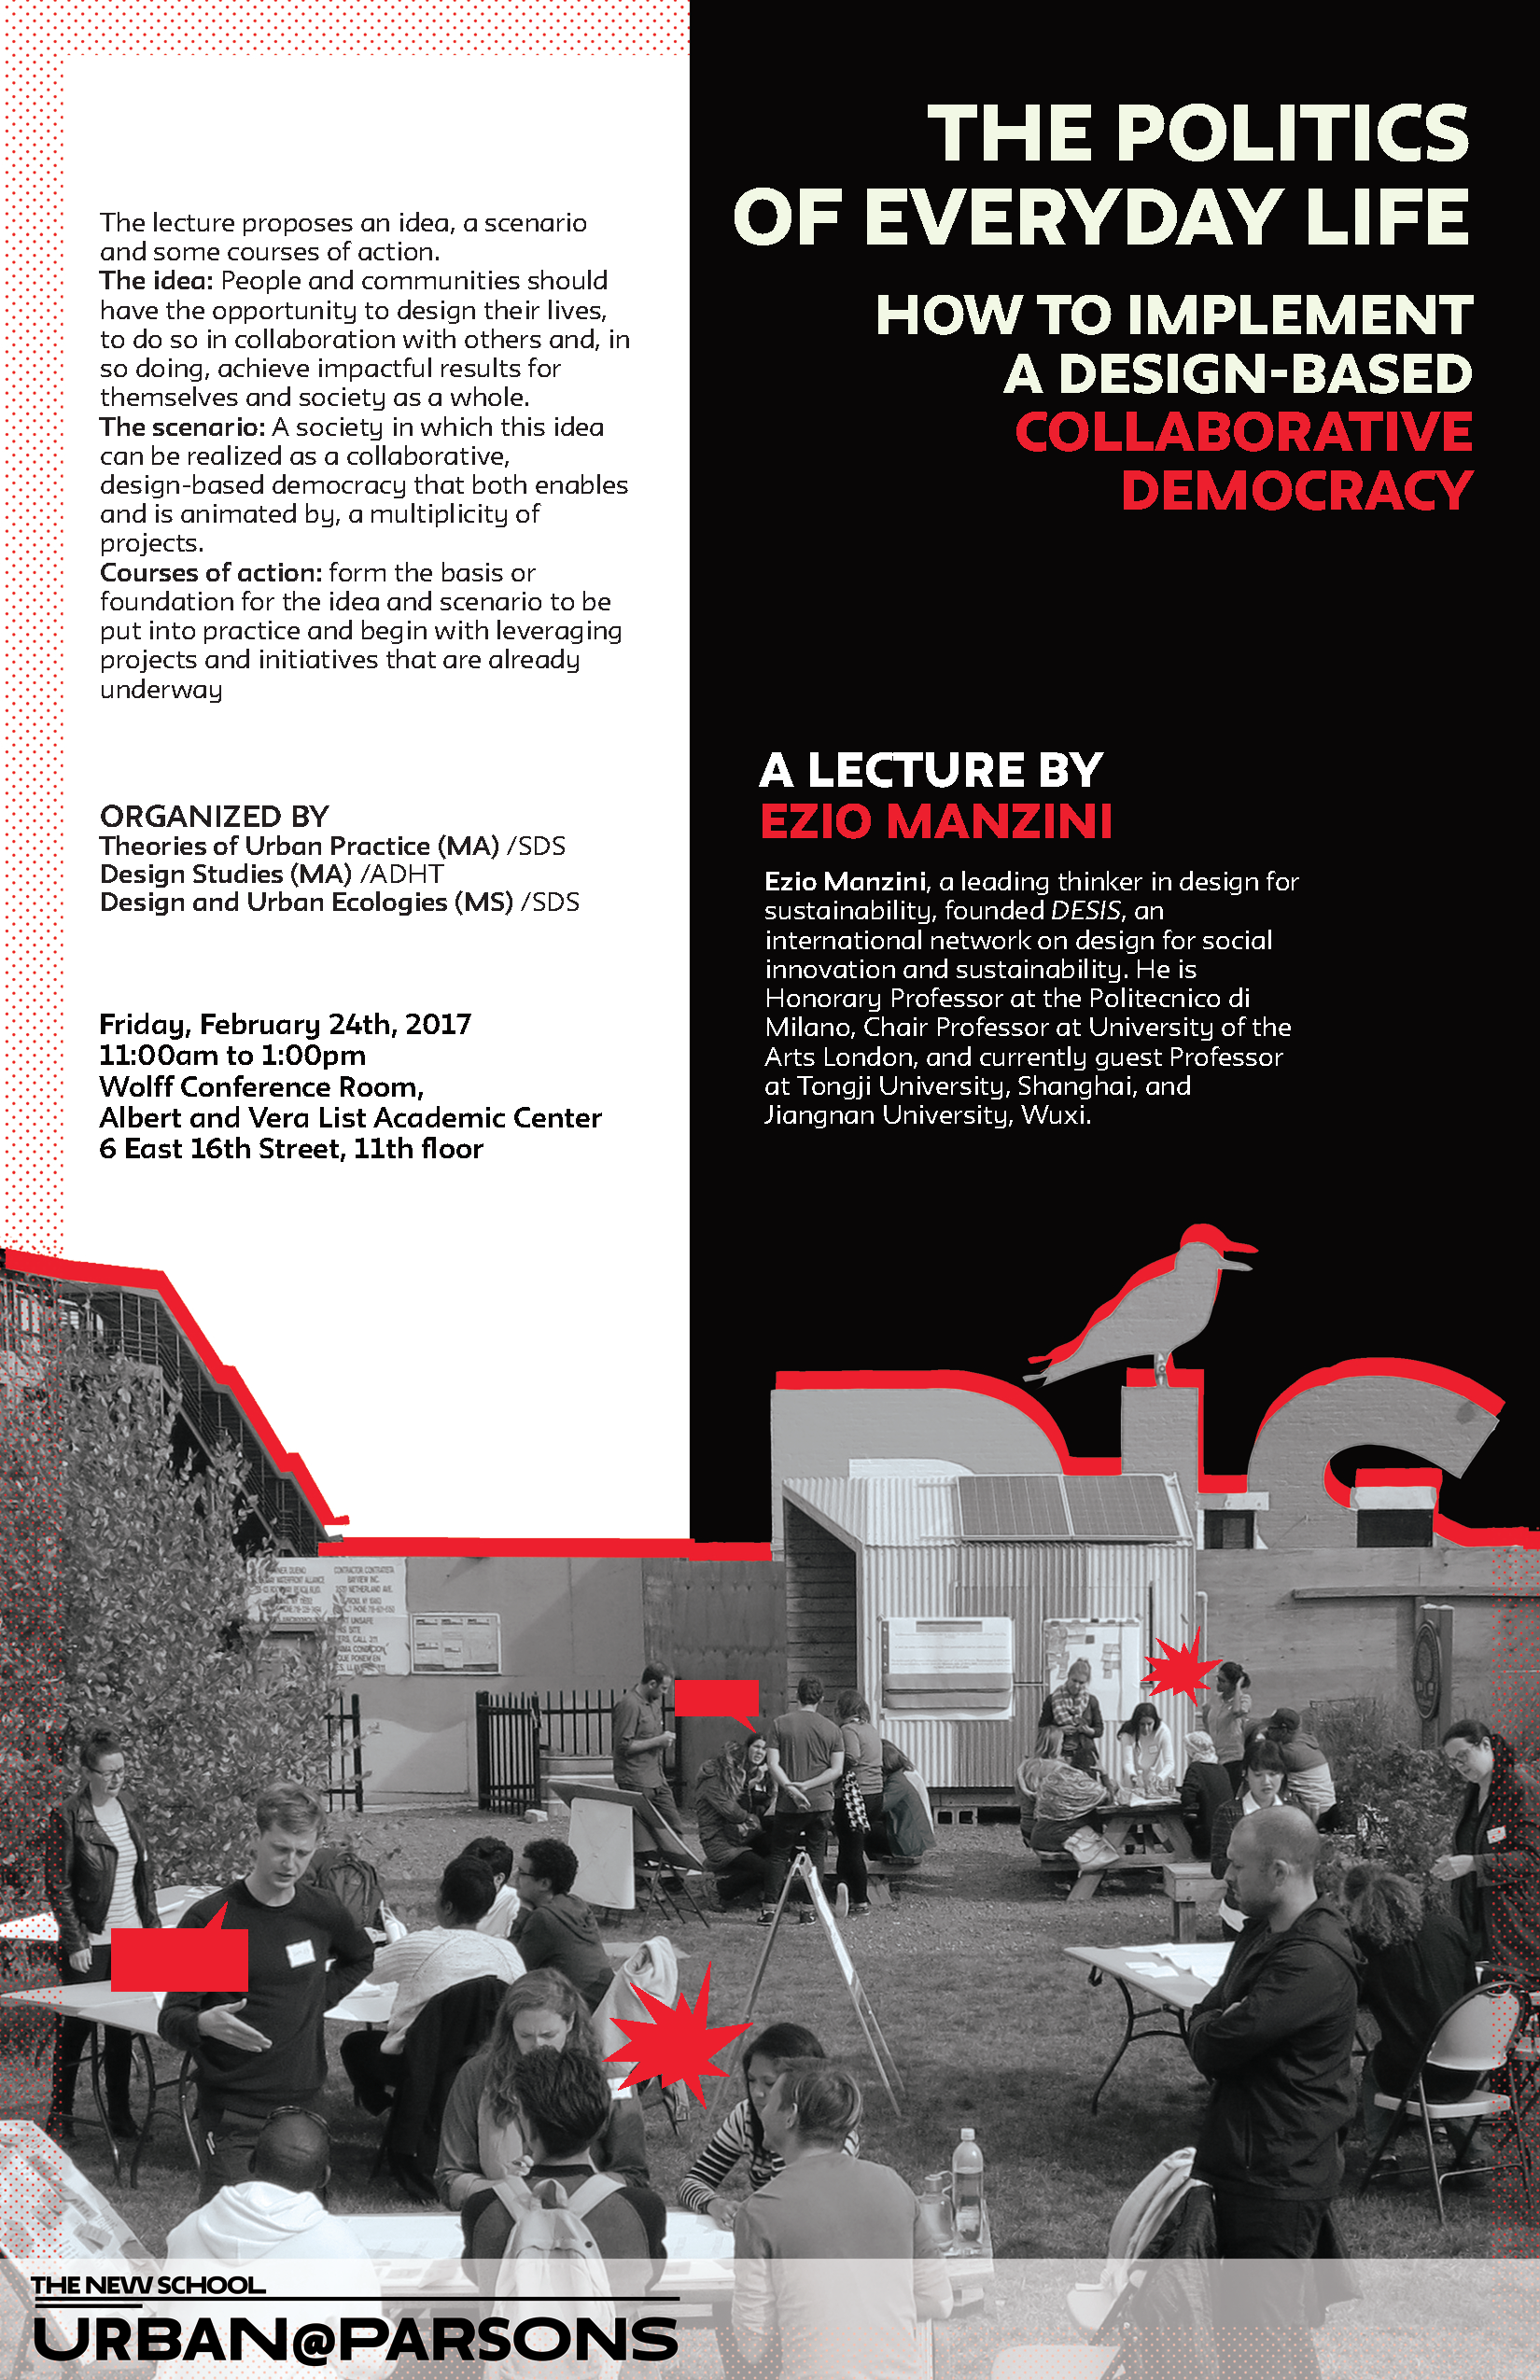 The Politics Of Everyday Life How To Implement A Design Based Collaborative Democracy A Lecture By Ezio Manzini Urban Parsons